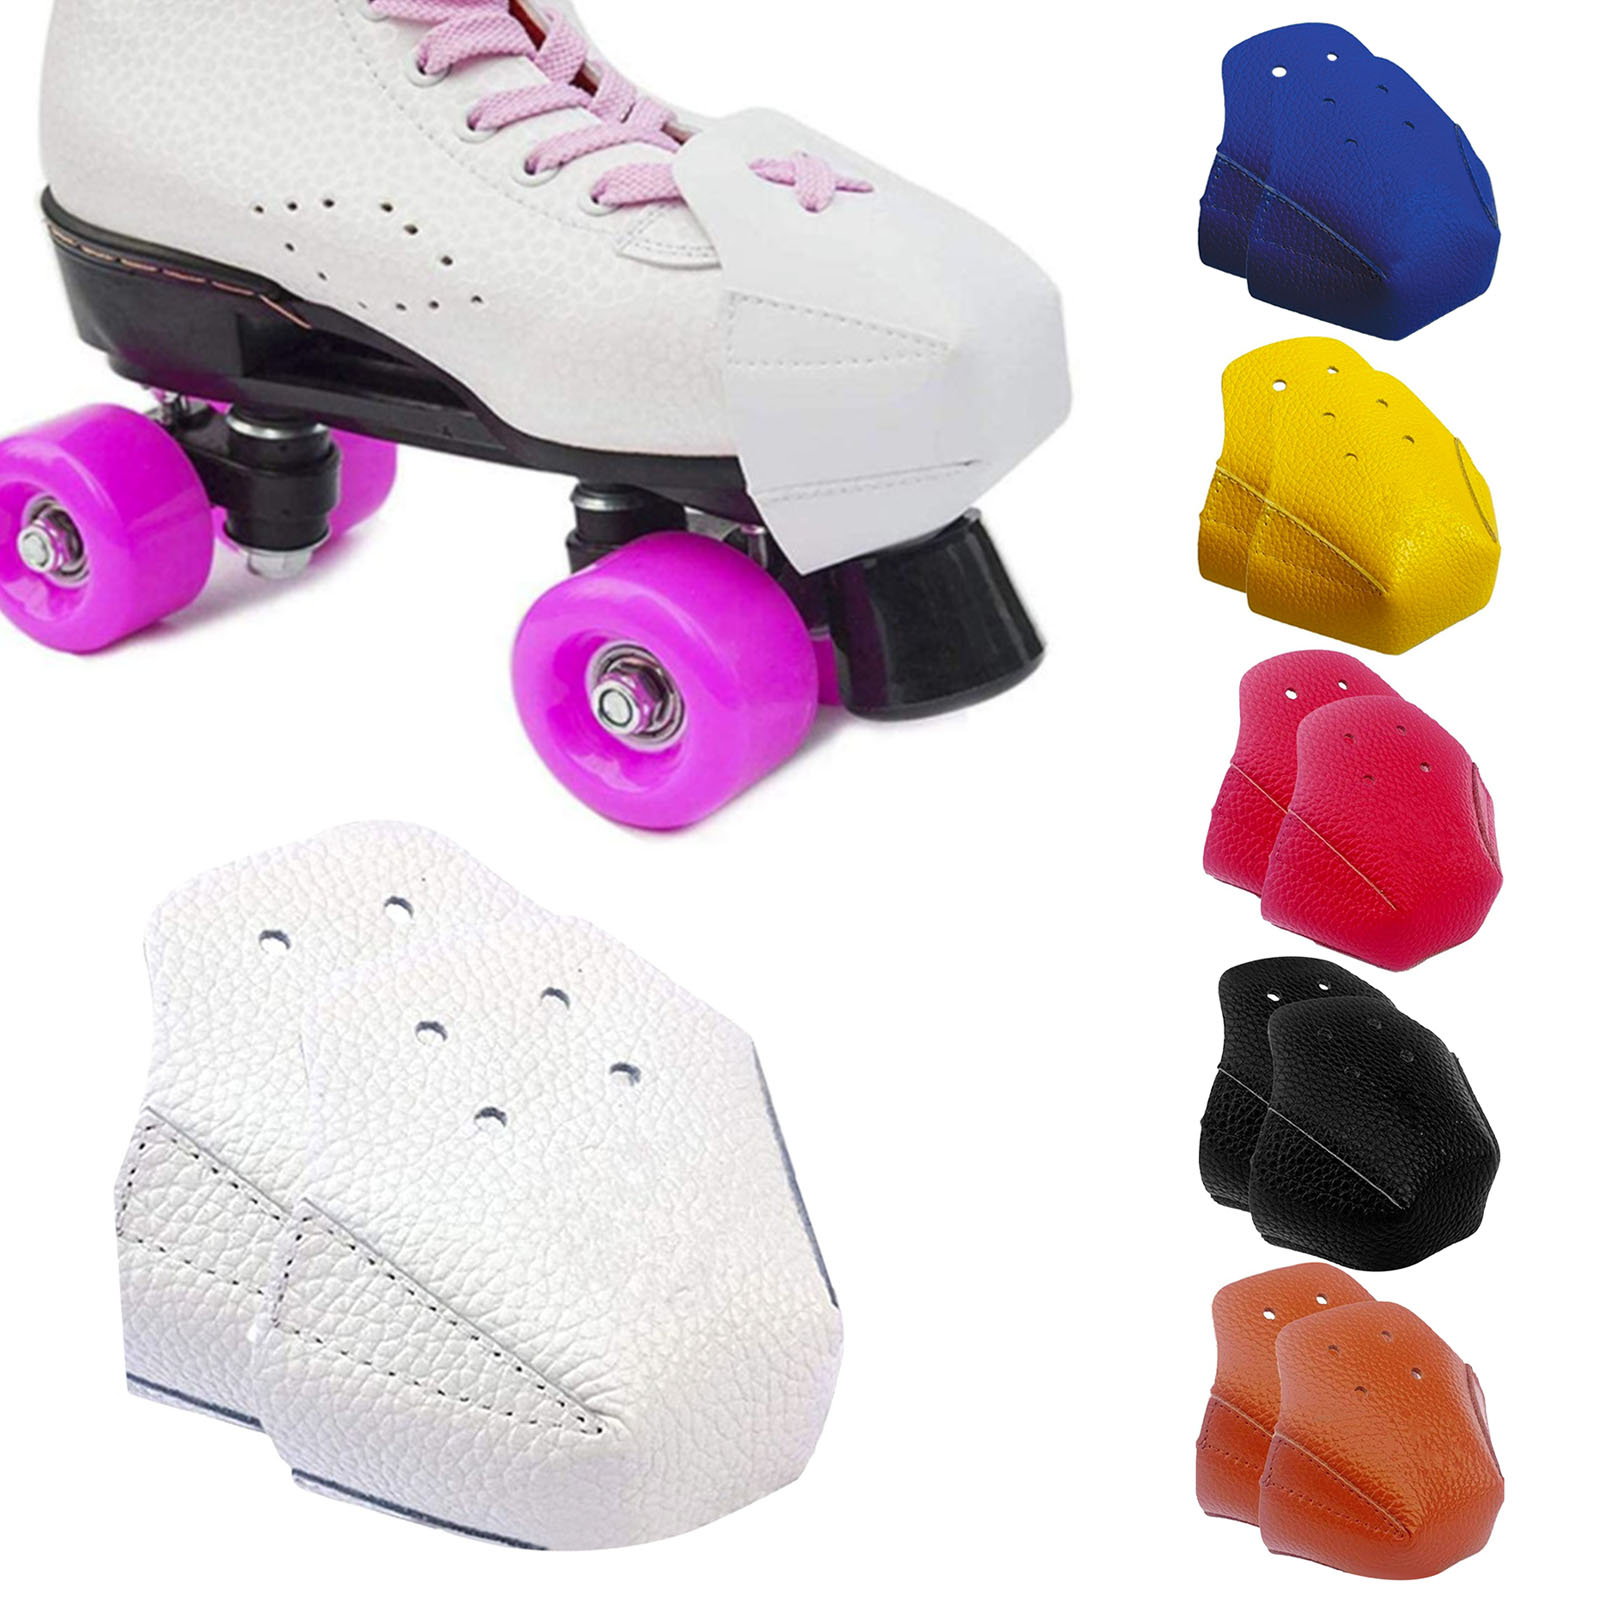 1 Pair Protective Skates Head Toe Cap For Toe Protector Inline Skates Roller Skating Shoes Leather Toe Cap Guard Roller